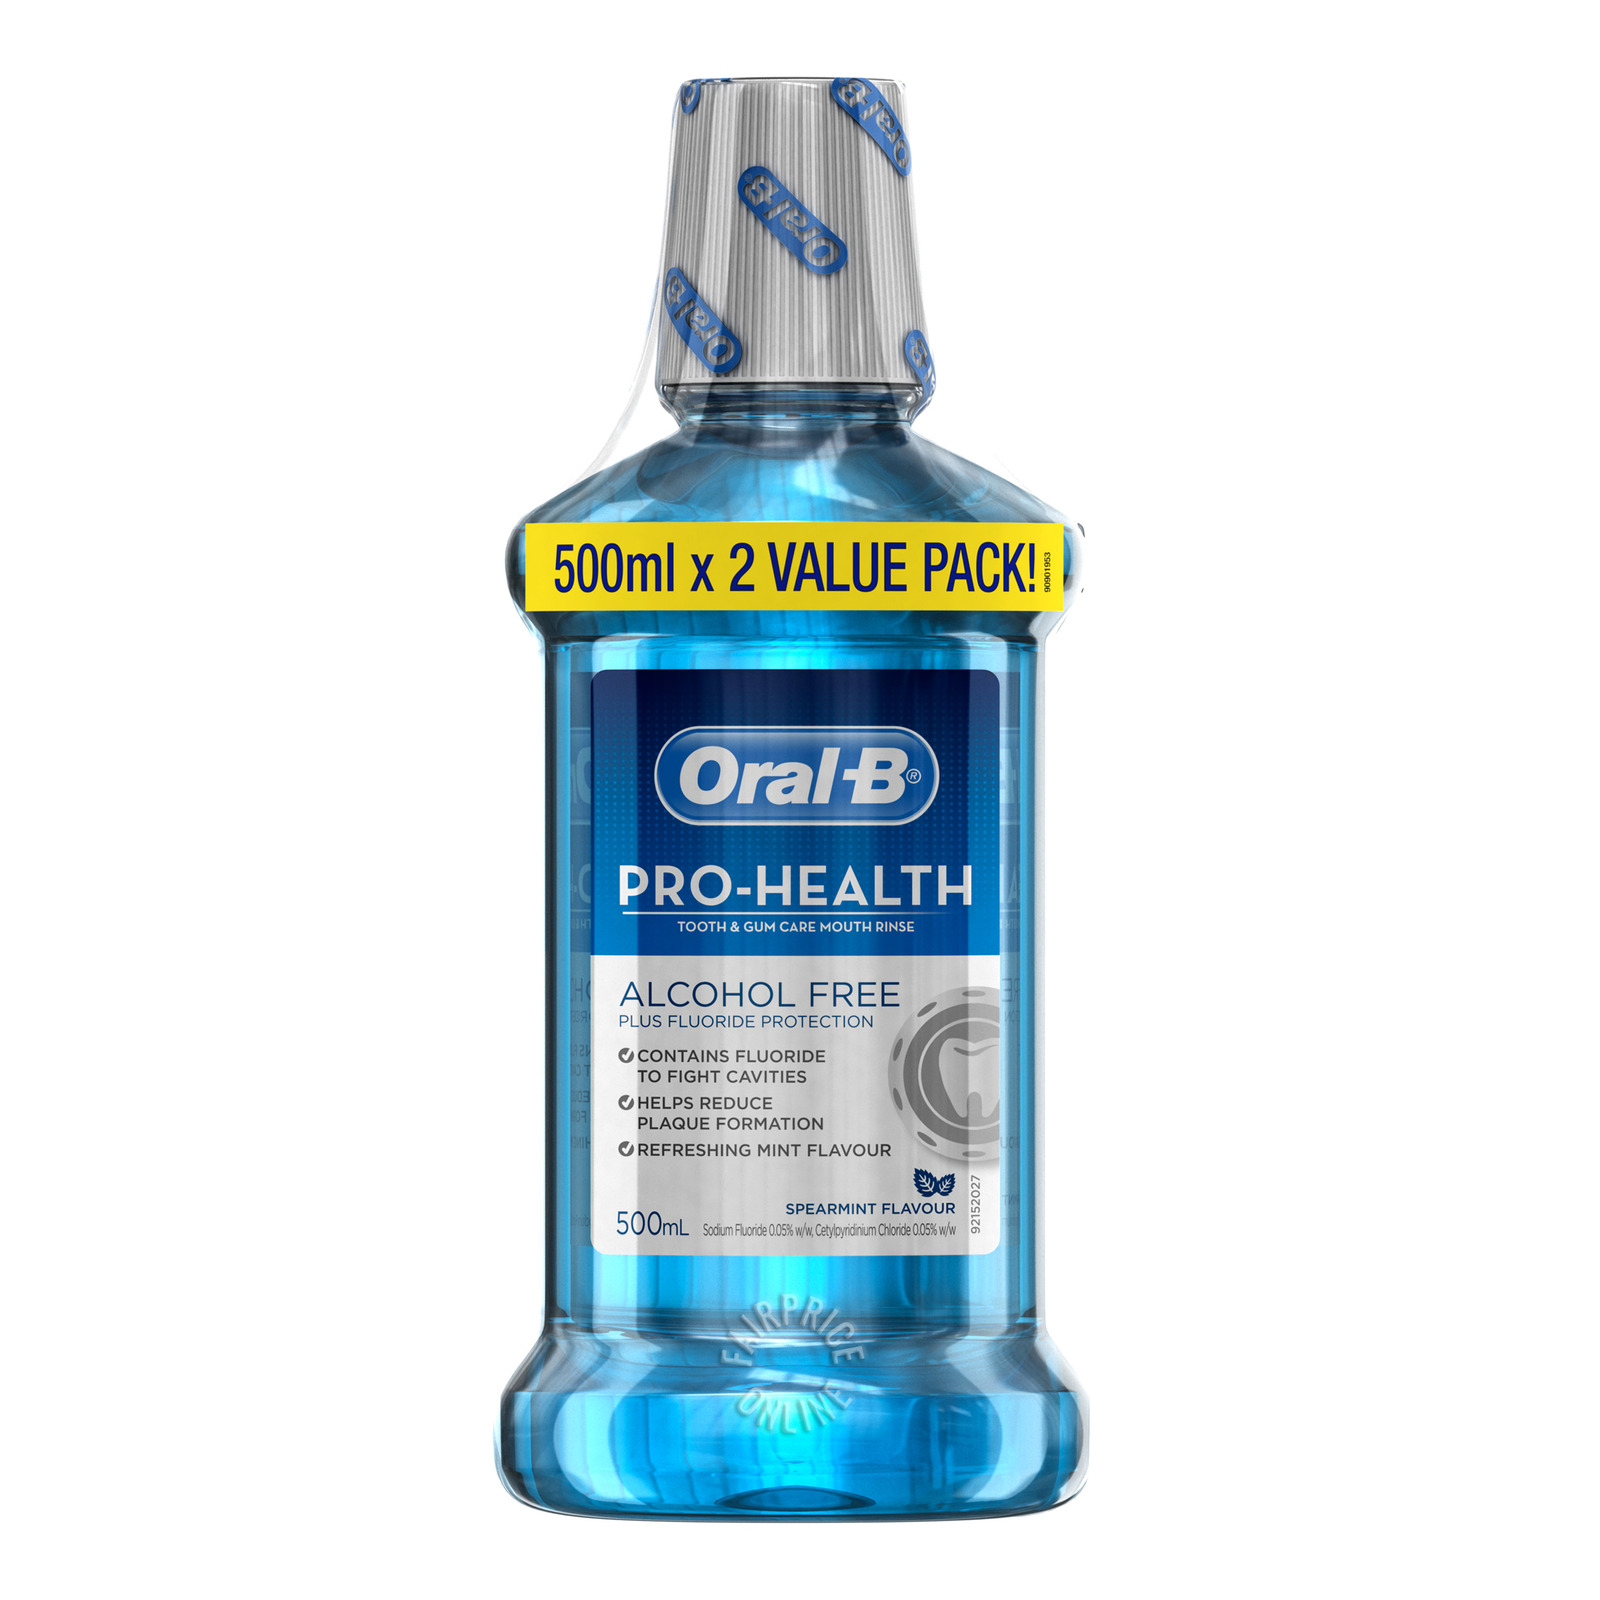 Oral-B Pro-Health Tooth & Gum Care Mouth Rinse - Spearmint